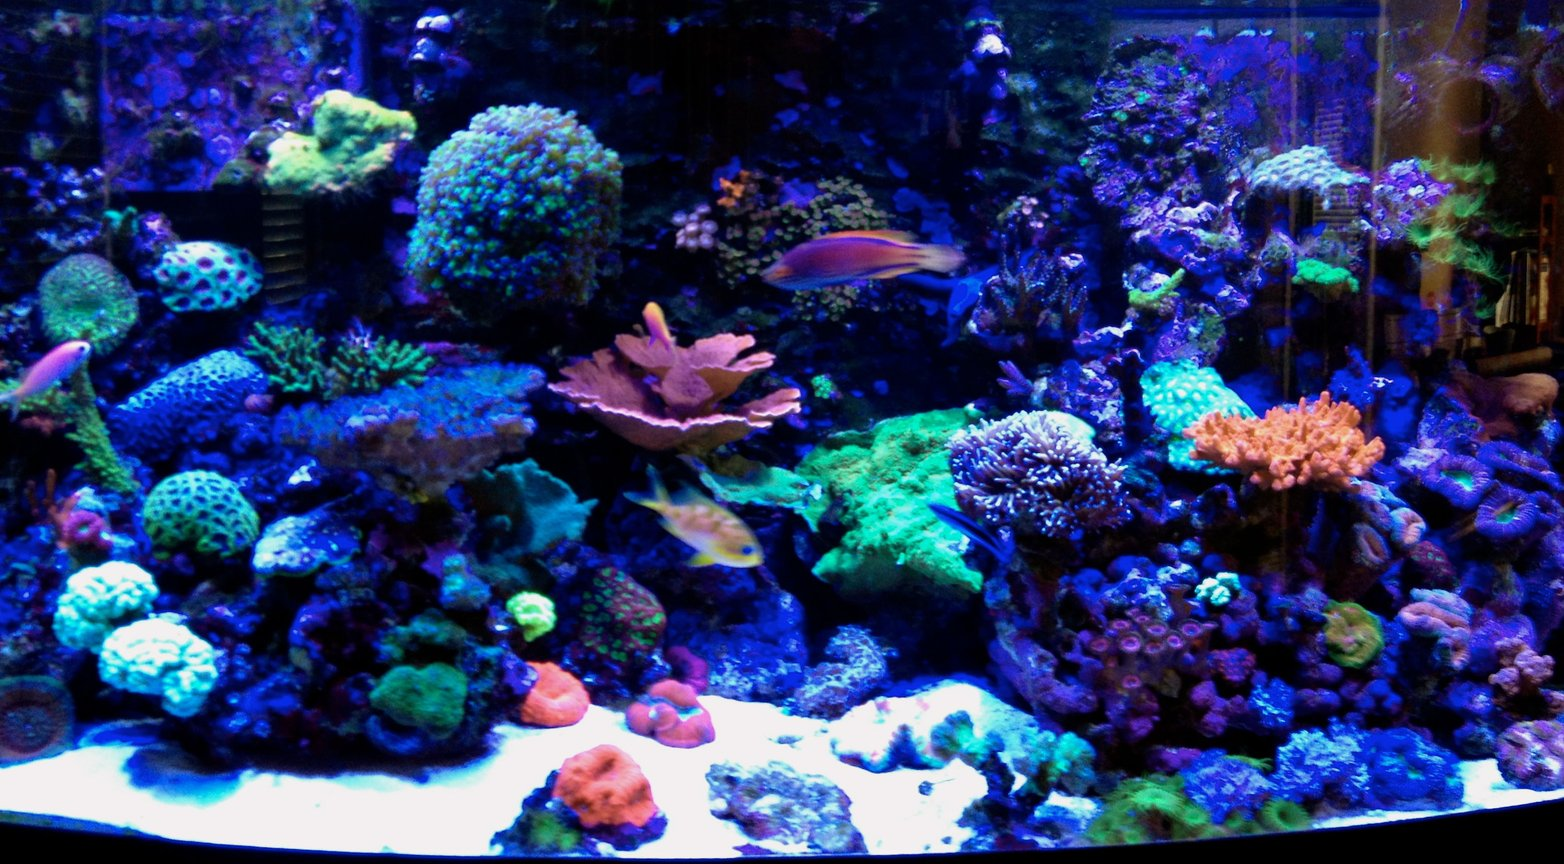 75 gallons reef tank (mostly live coral and fish) - Erik's 75 gallon bow-front